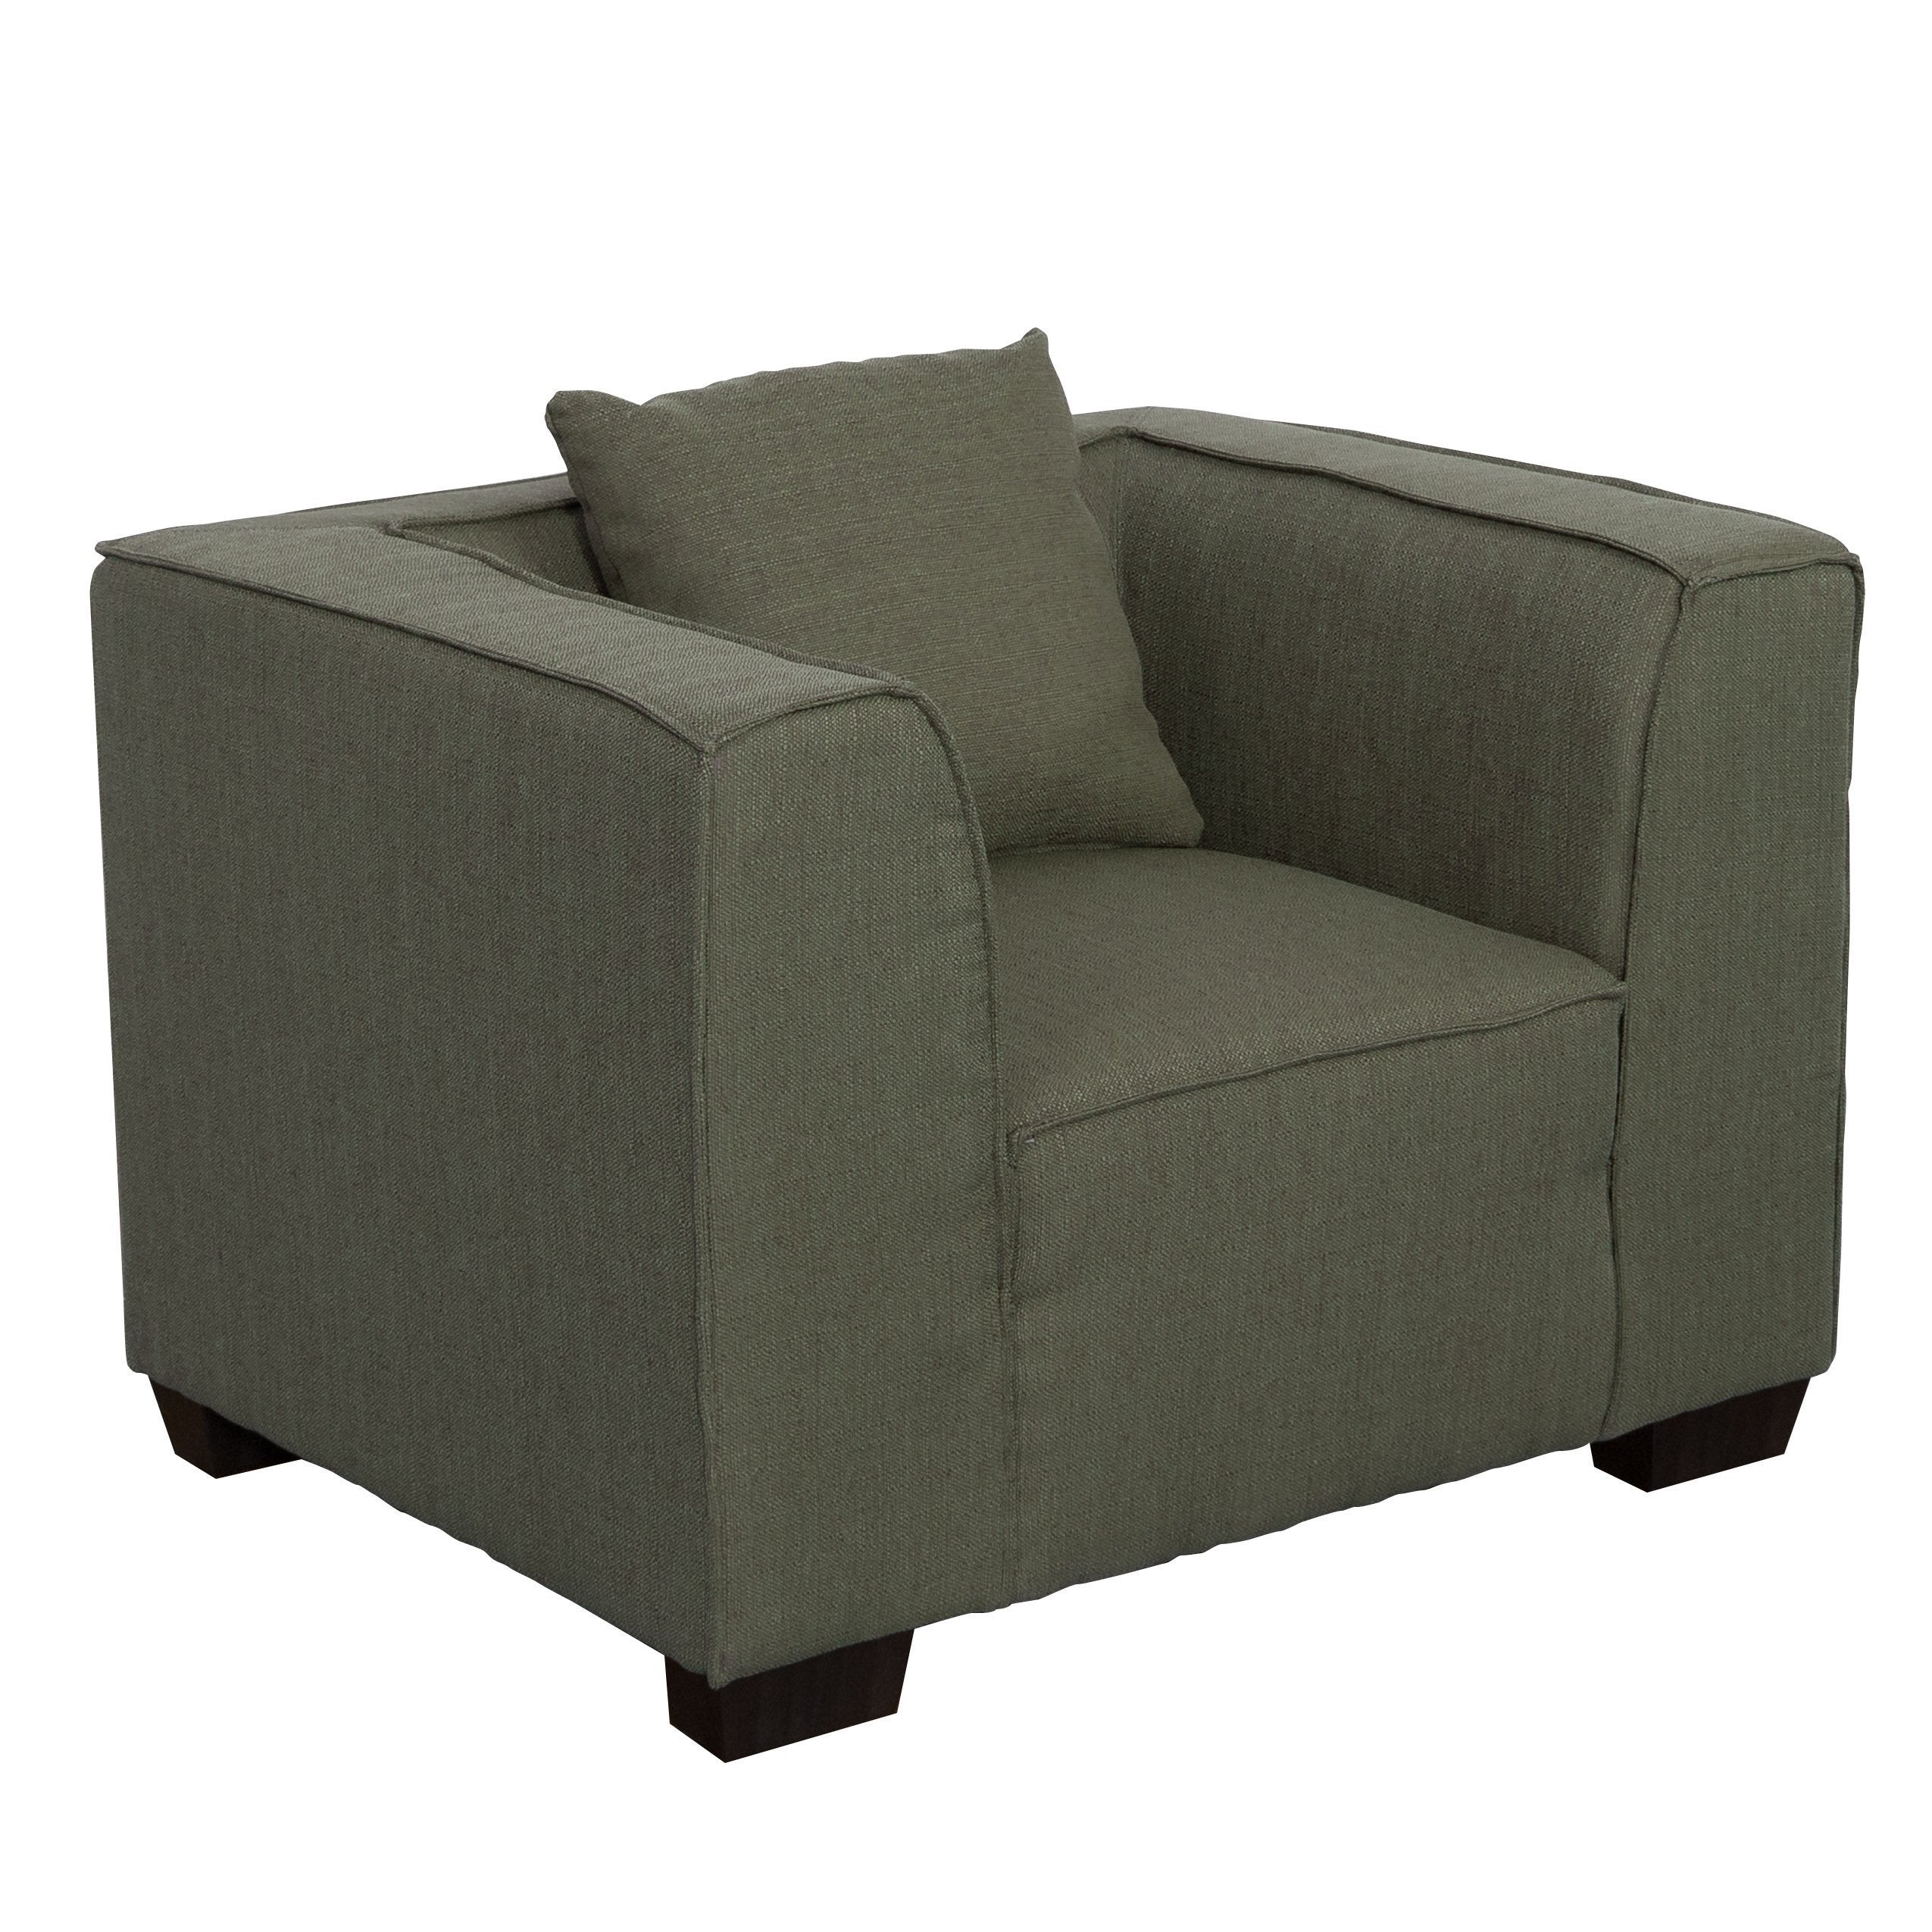 Excellent 2Pc Fabric Chair And Ottoman Set Clearance Ibusinesslaw Wood Chair Design Ideas Ibusinesslaworg